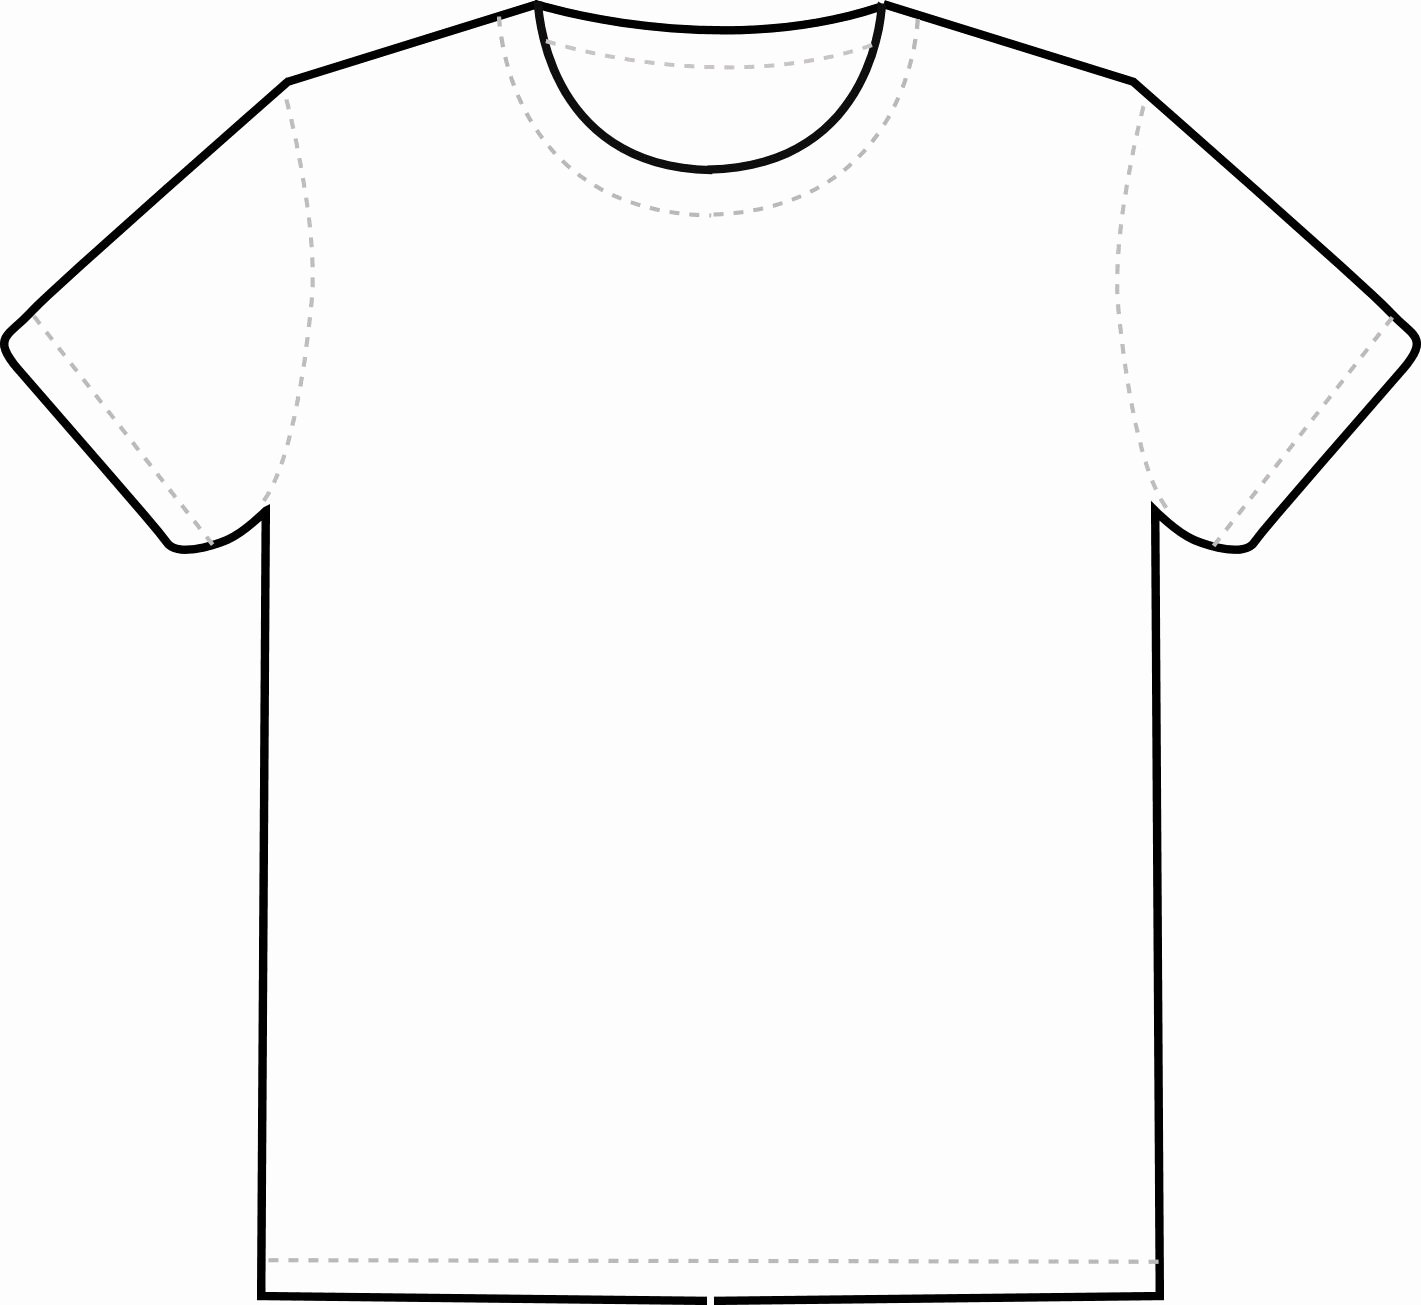 Free T Shirt Template Best Of T Shirt Outline Clipart Clipart Best Clipart Best